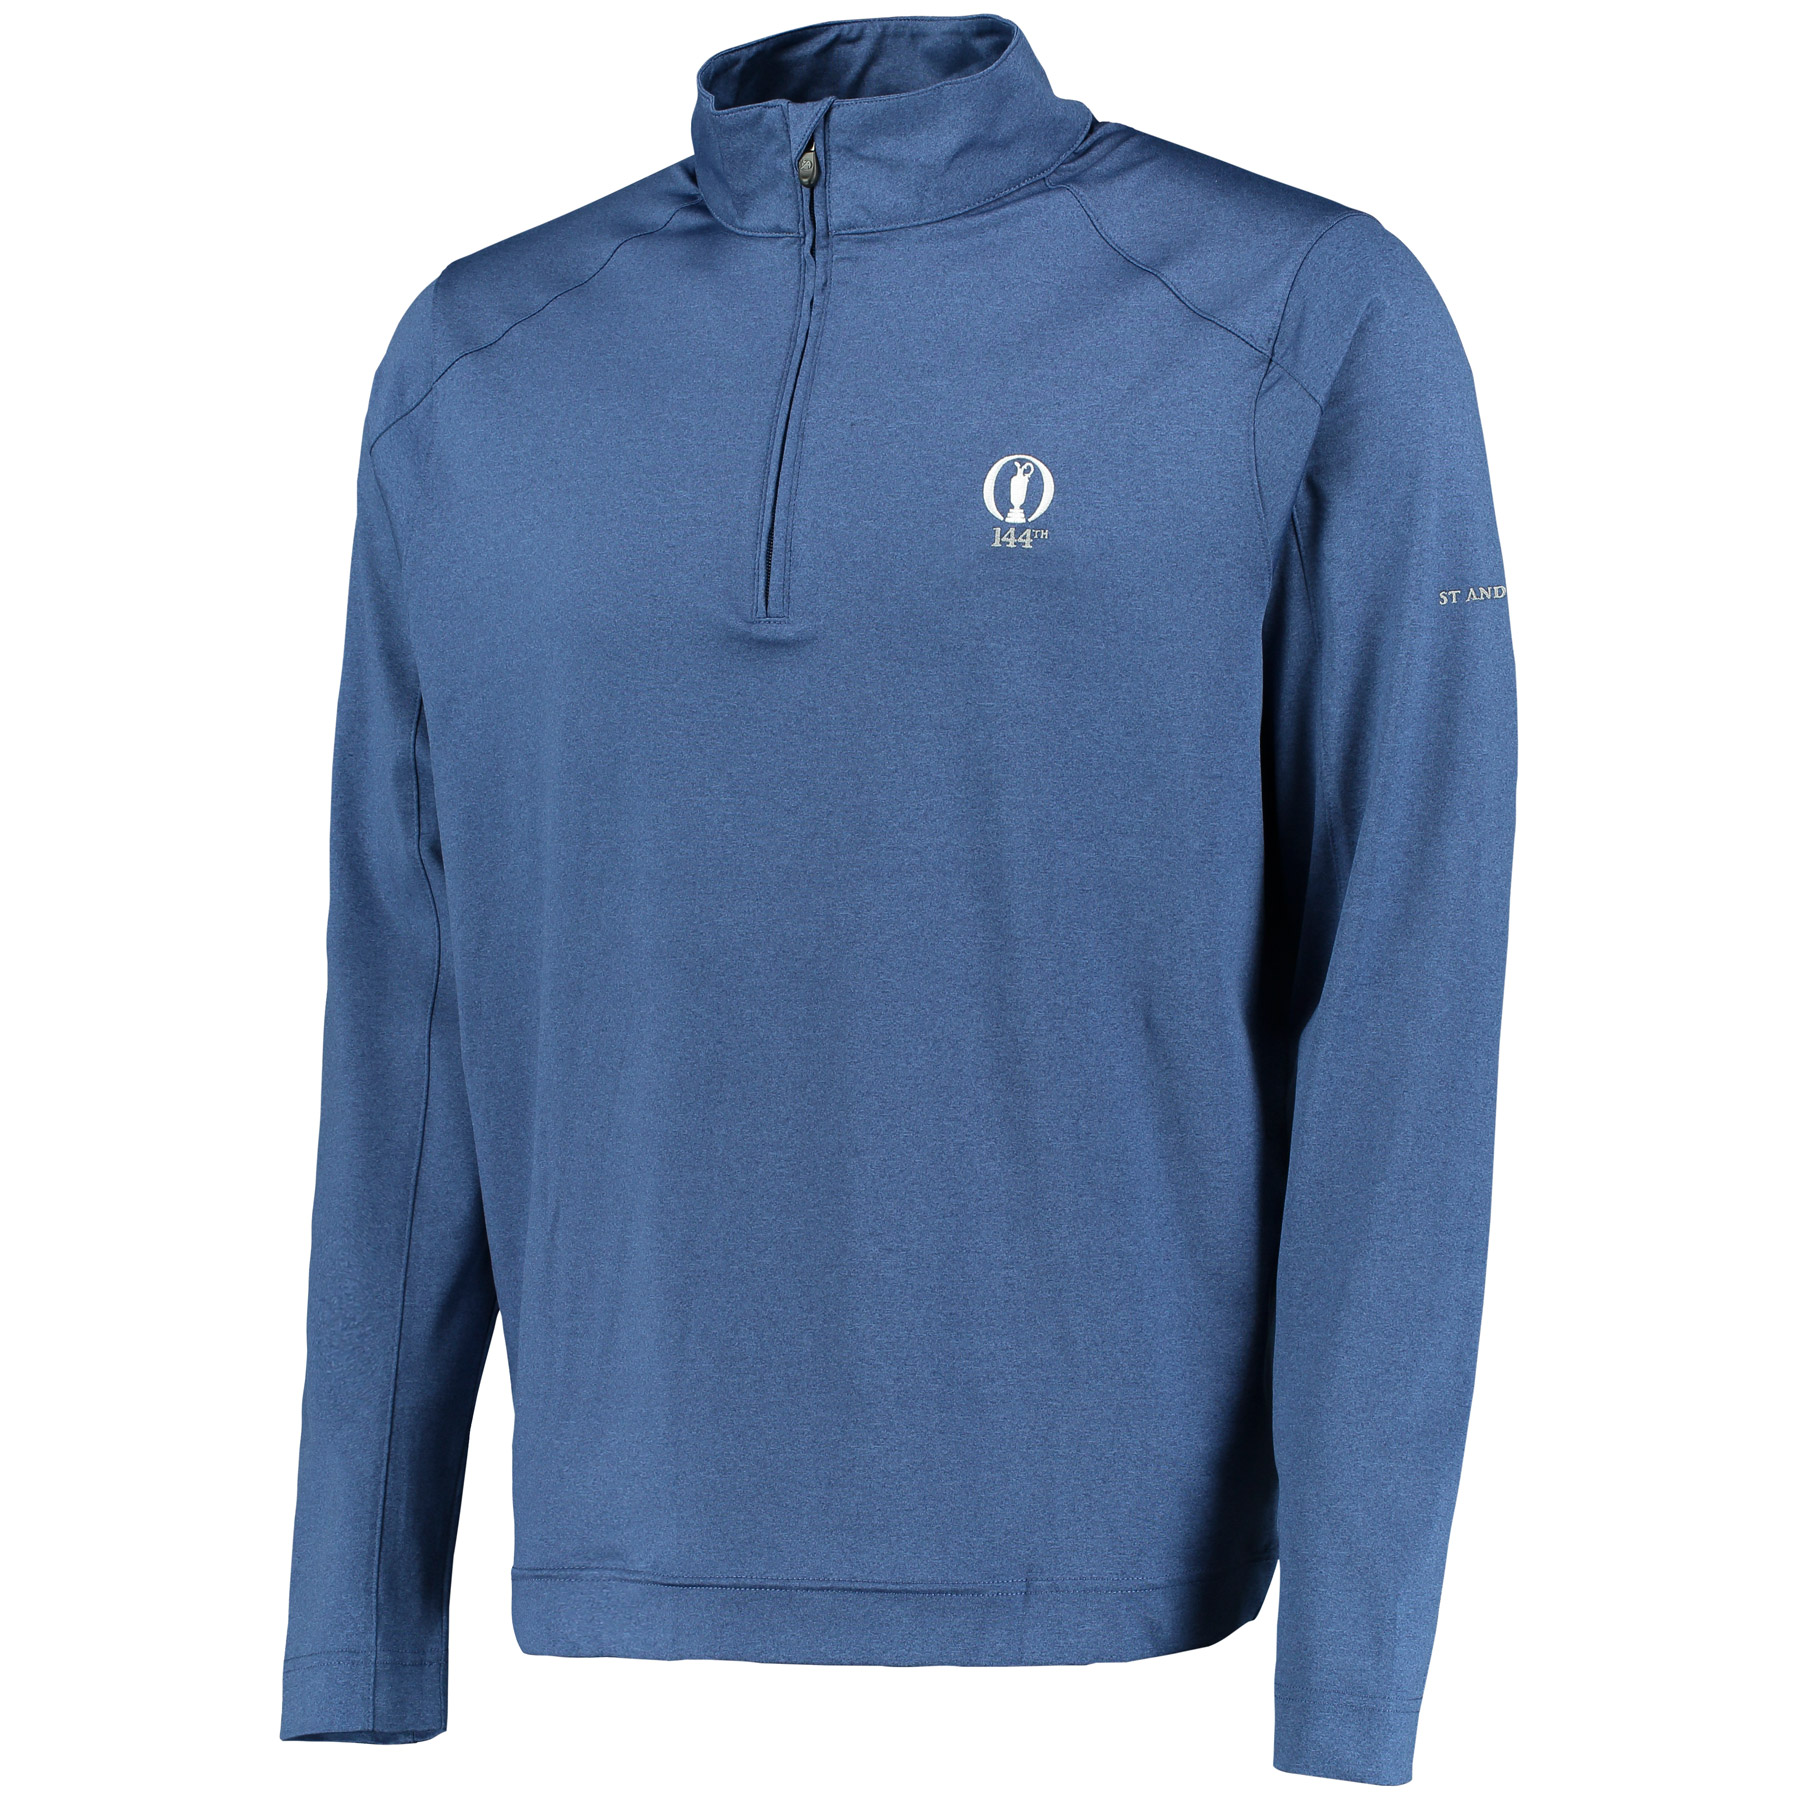 The Open 144th St Andrews Lenox Thermal Regulation Heather 1/2 Zip Pullover - Marine Heather